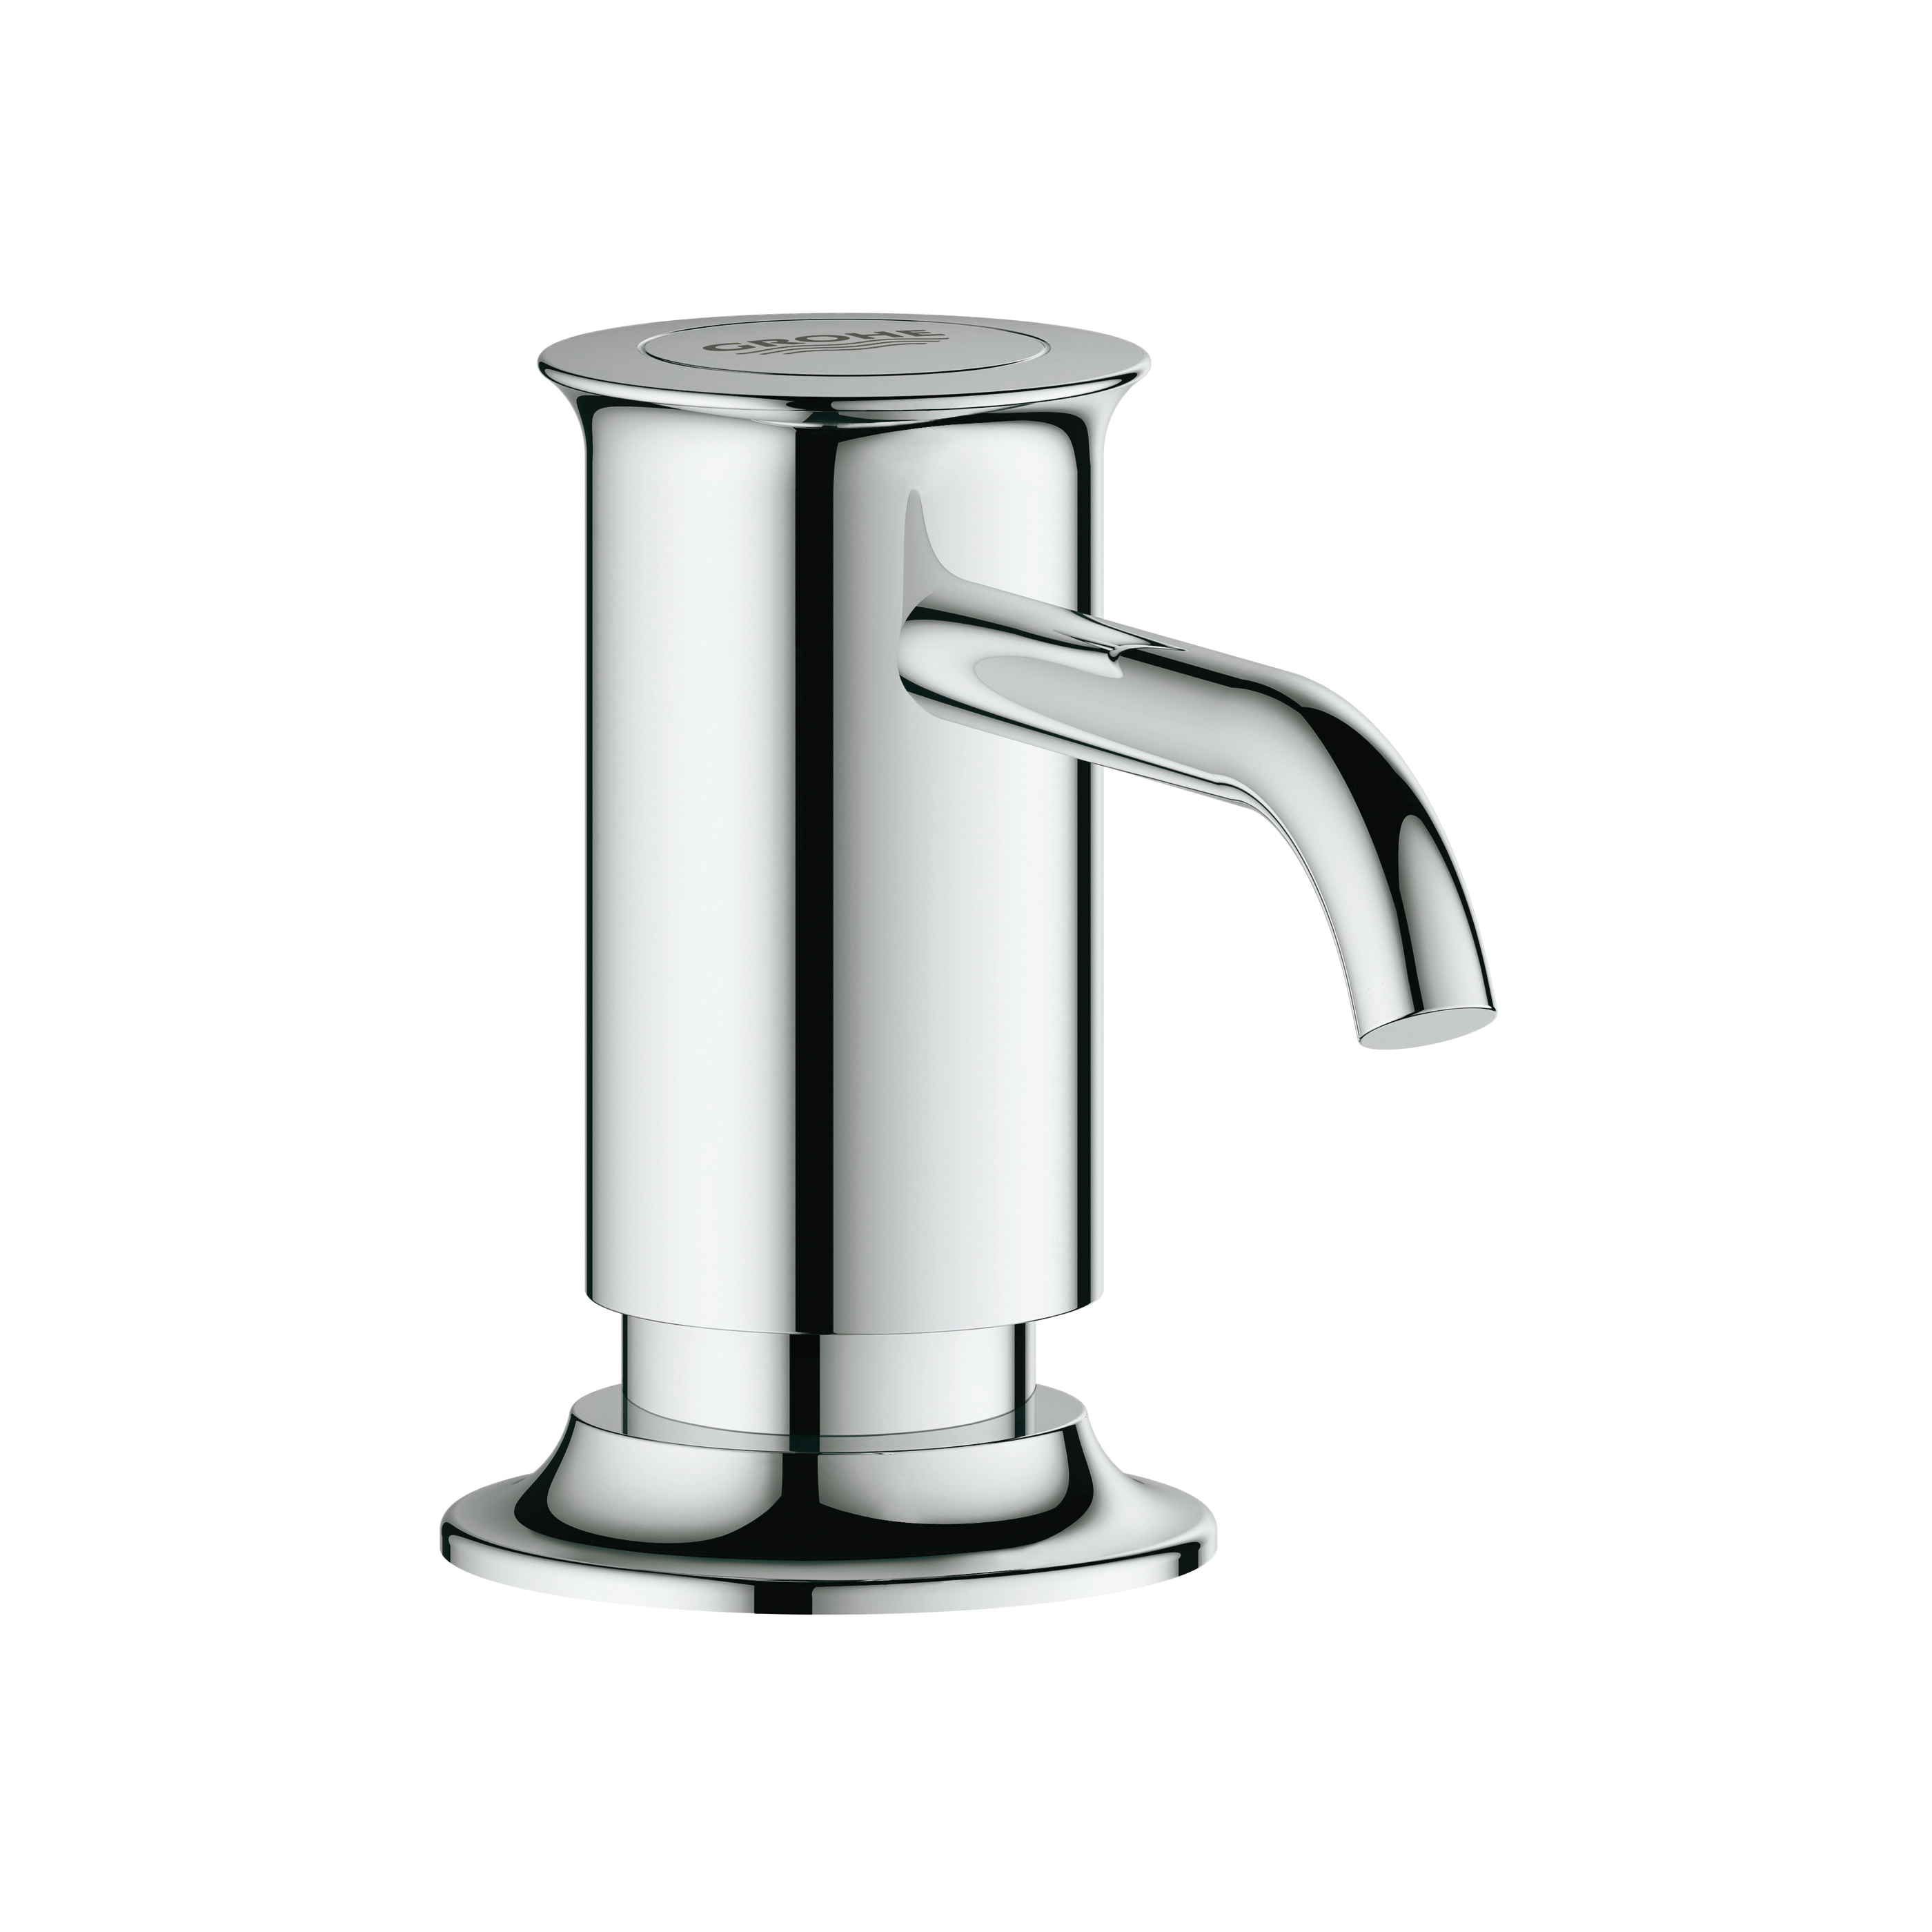 GROHE 40537000 Authentic Soap Dispenser, 15 oz, Deck Mount, Brass, StarLight® Chrome